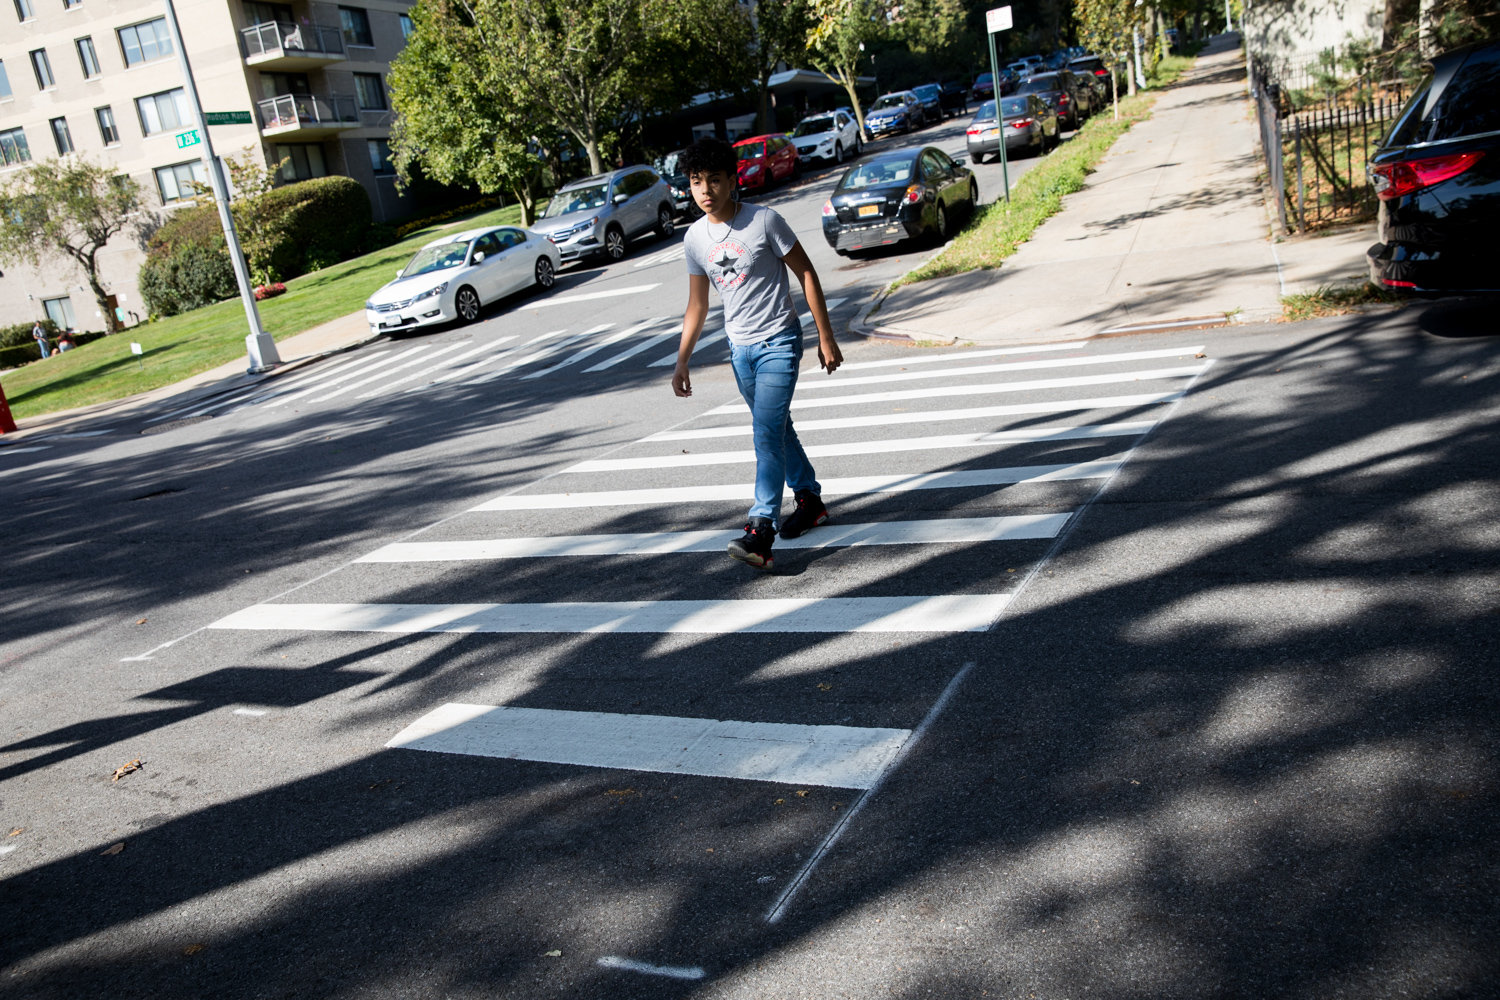 A pedestrian crosses at the intersection of Hudson Manor Terrace and West 236th Street. The city's transportation has endeavored to make the intersection safer for pedestrians through the removal of some parking spots, which has angered neighborhood drivers.